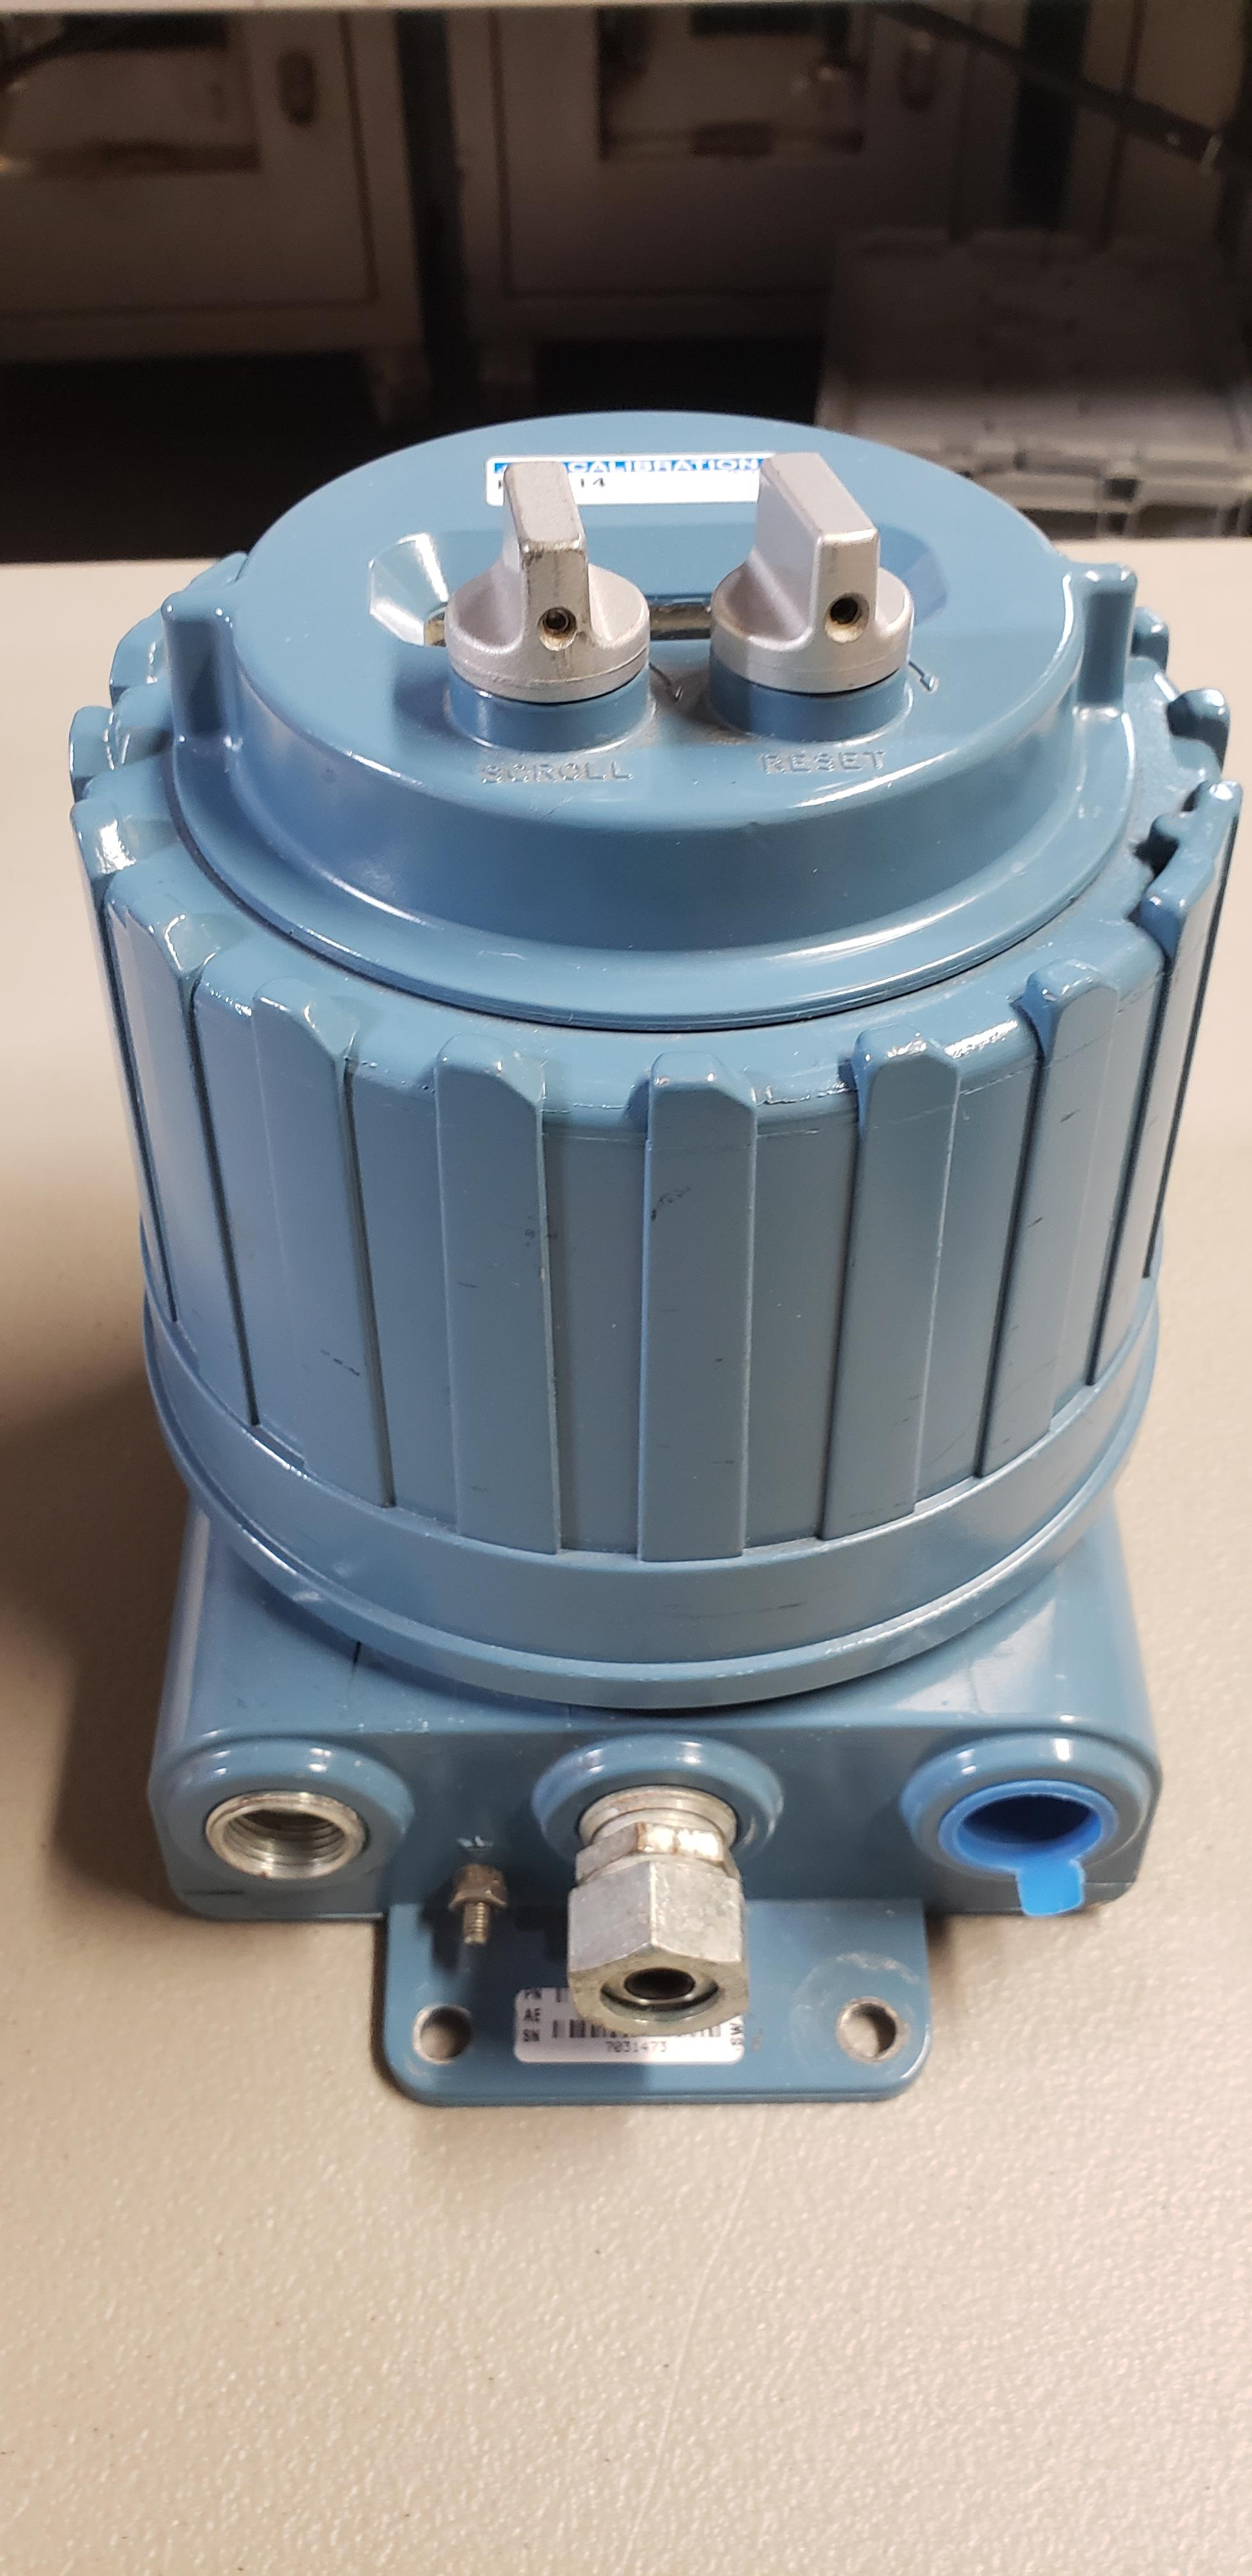 Lot 26 - Micromotions Inc Flow Transmitter